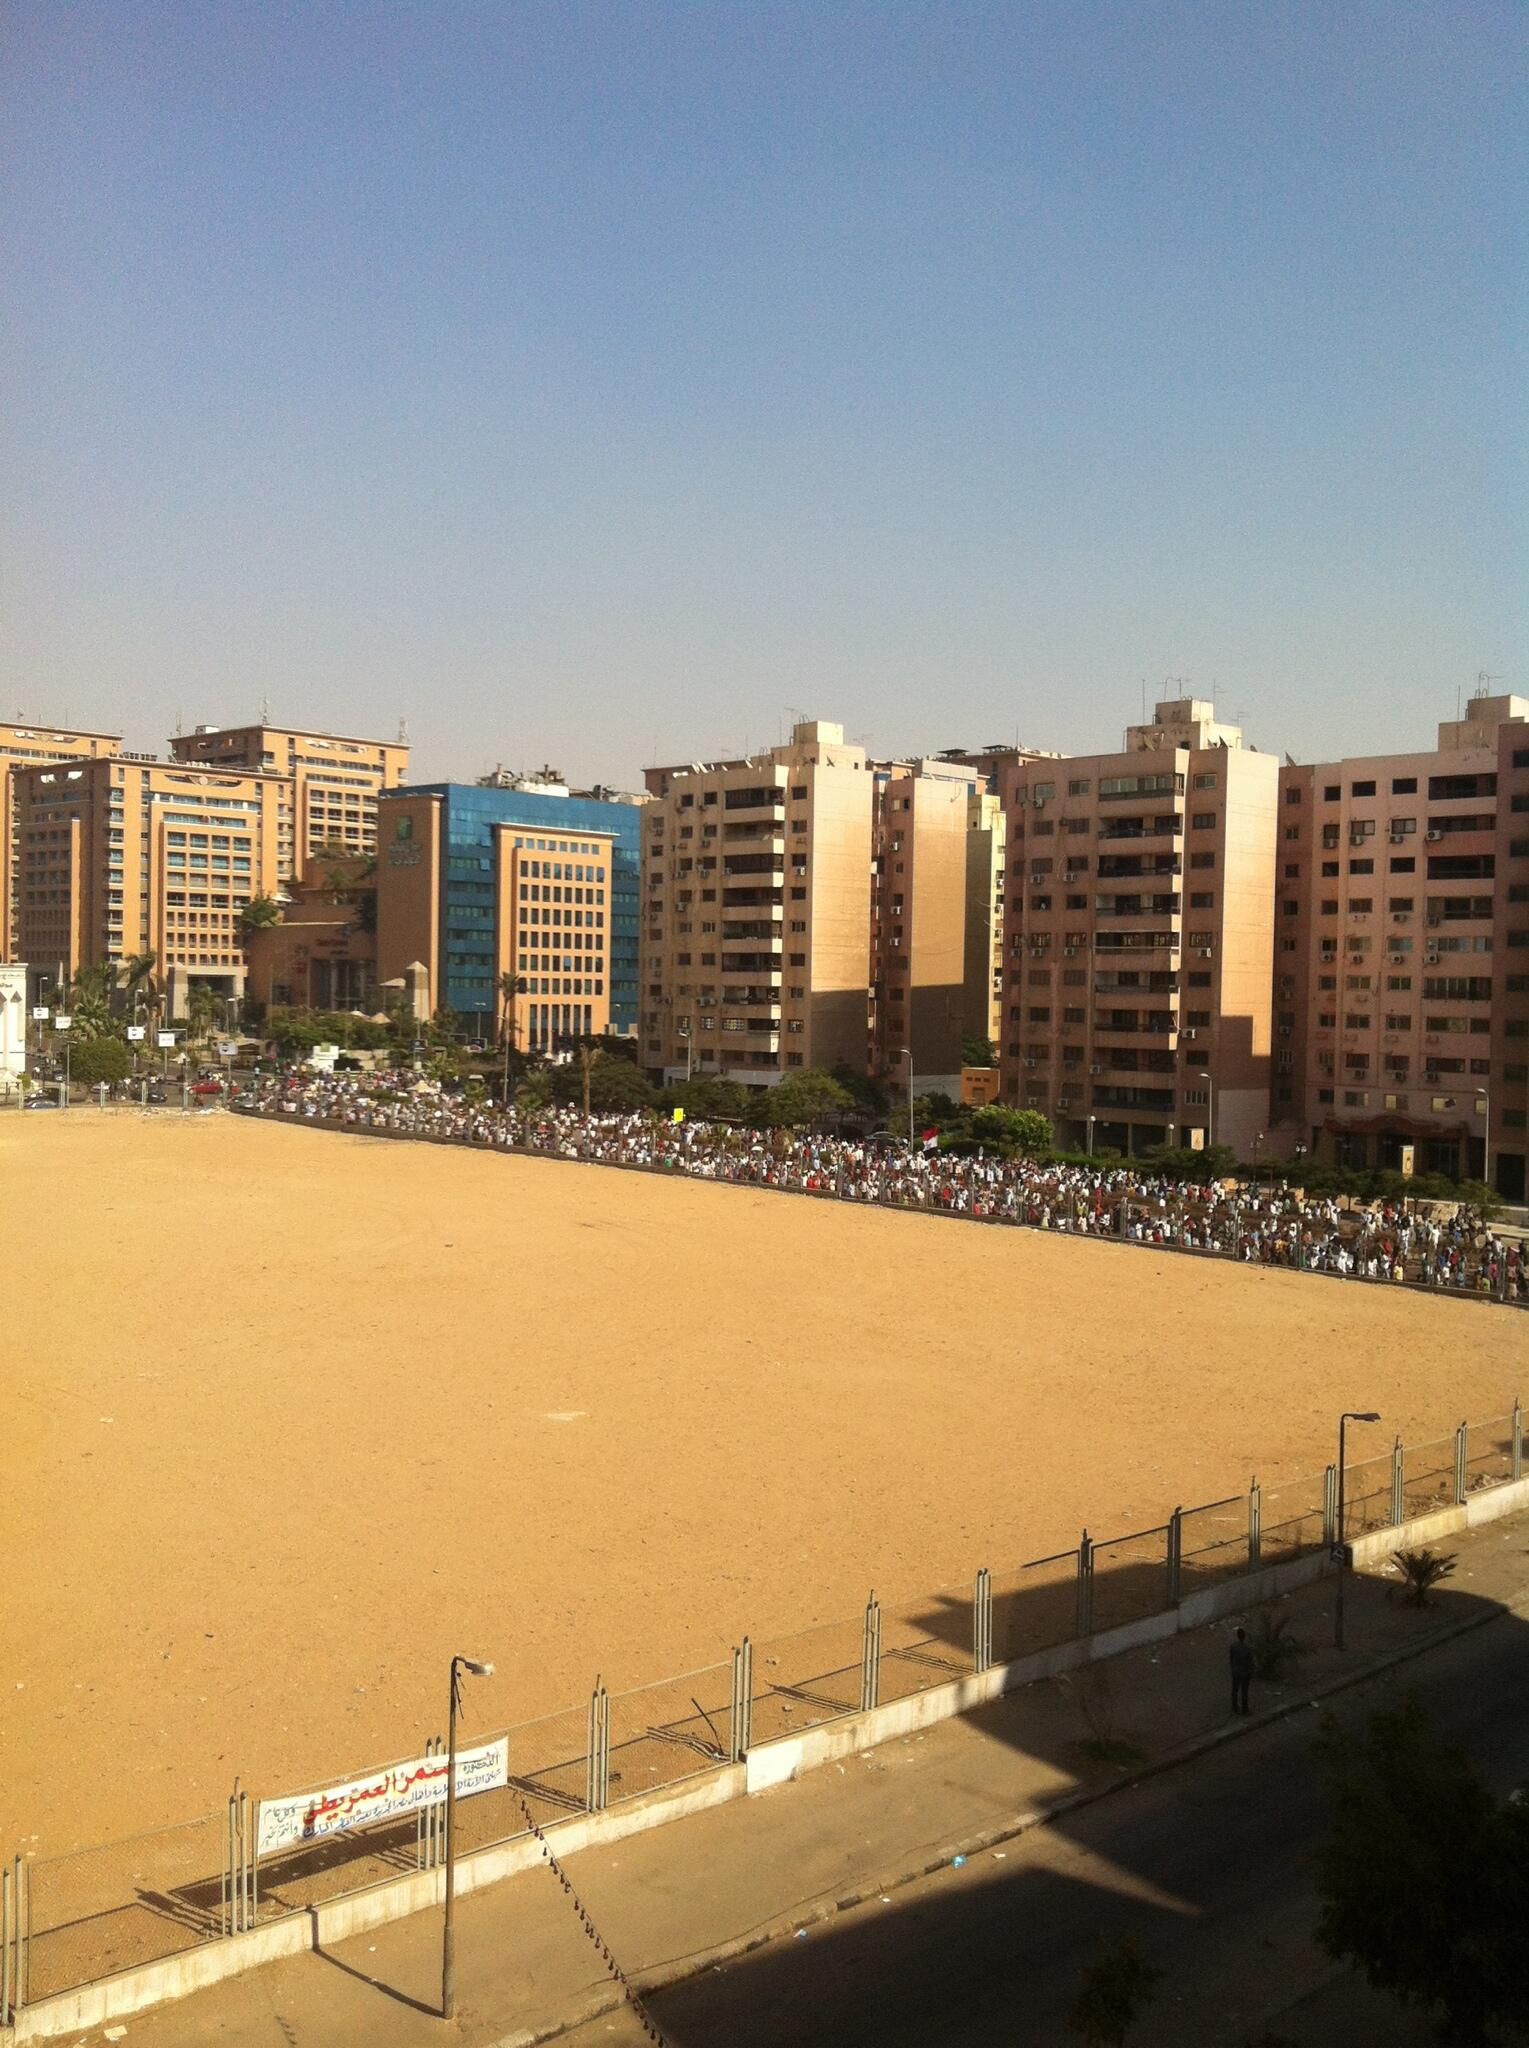 pro-morsy march going past city stars, headed in direction of nozha street, #cairo: http://t.co/EpgTVjAXTs